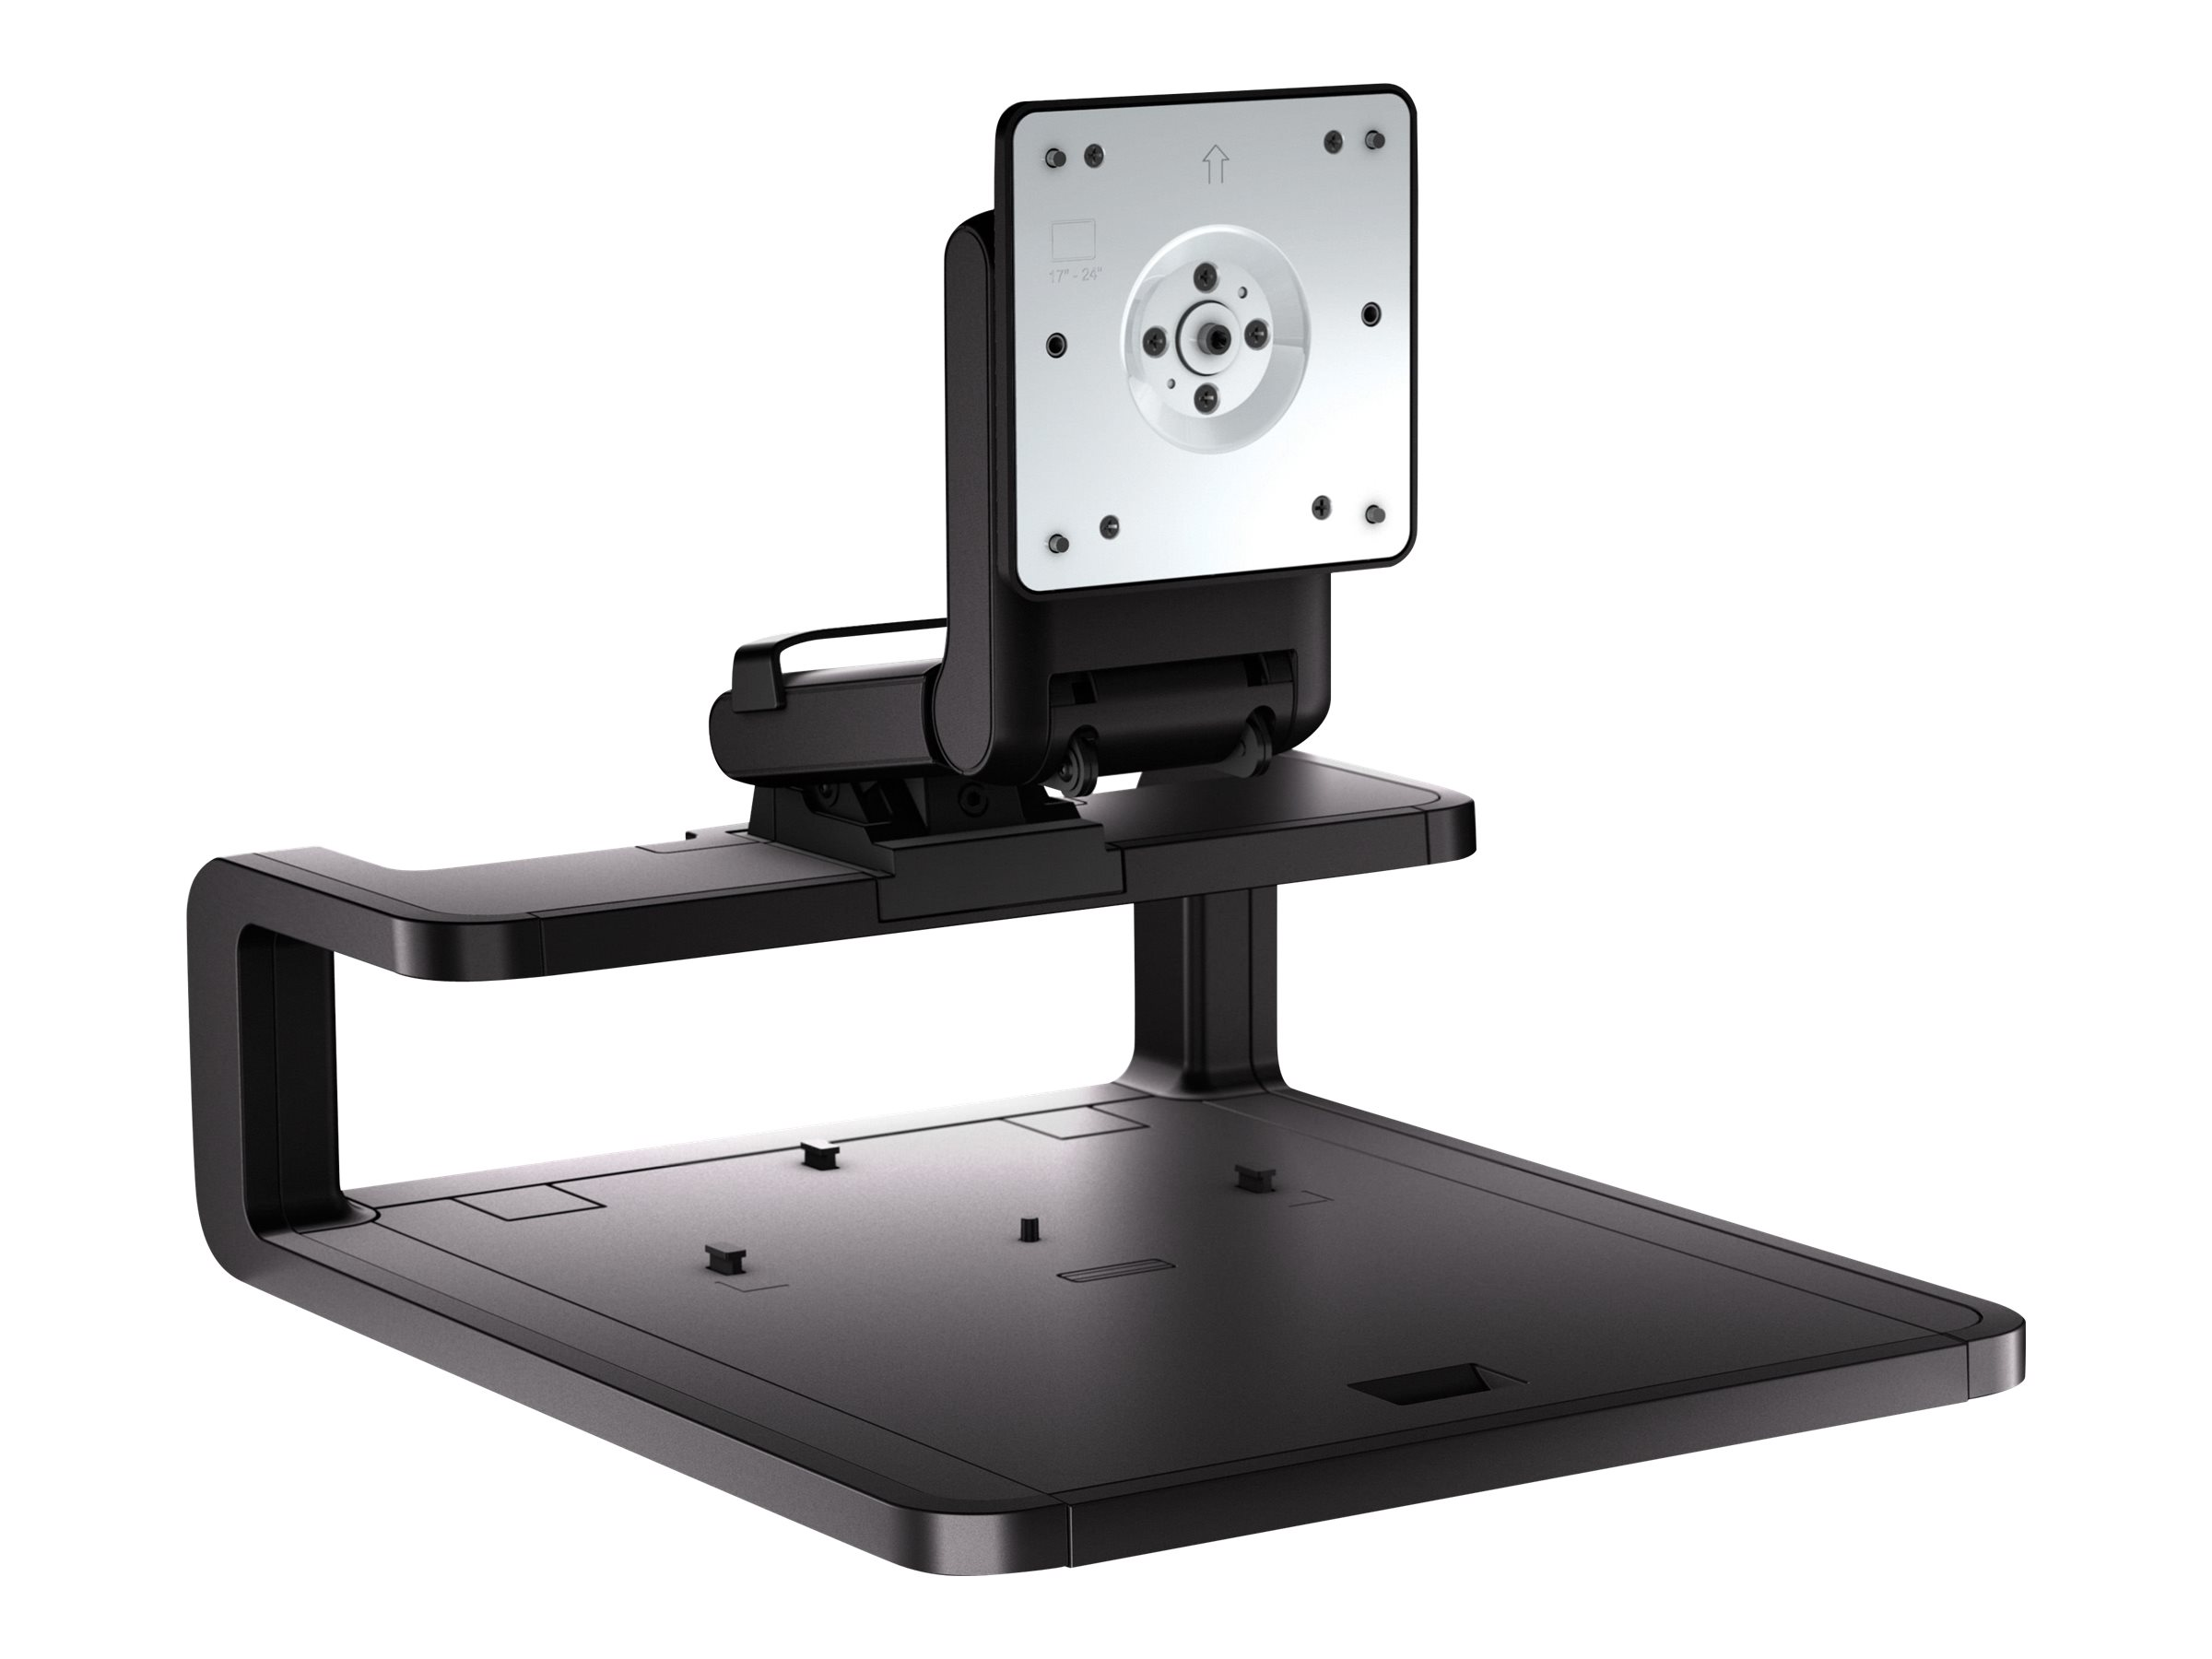 Image for Hp Adjustable Display Stand - Stand from Circuit City